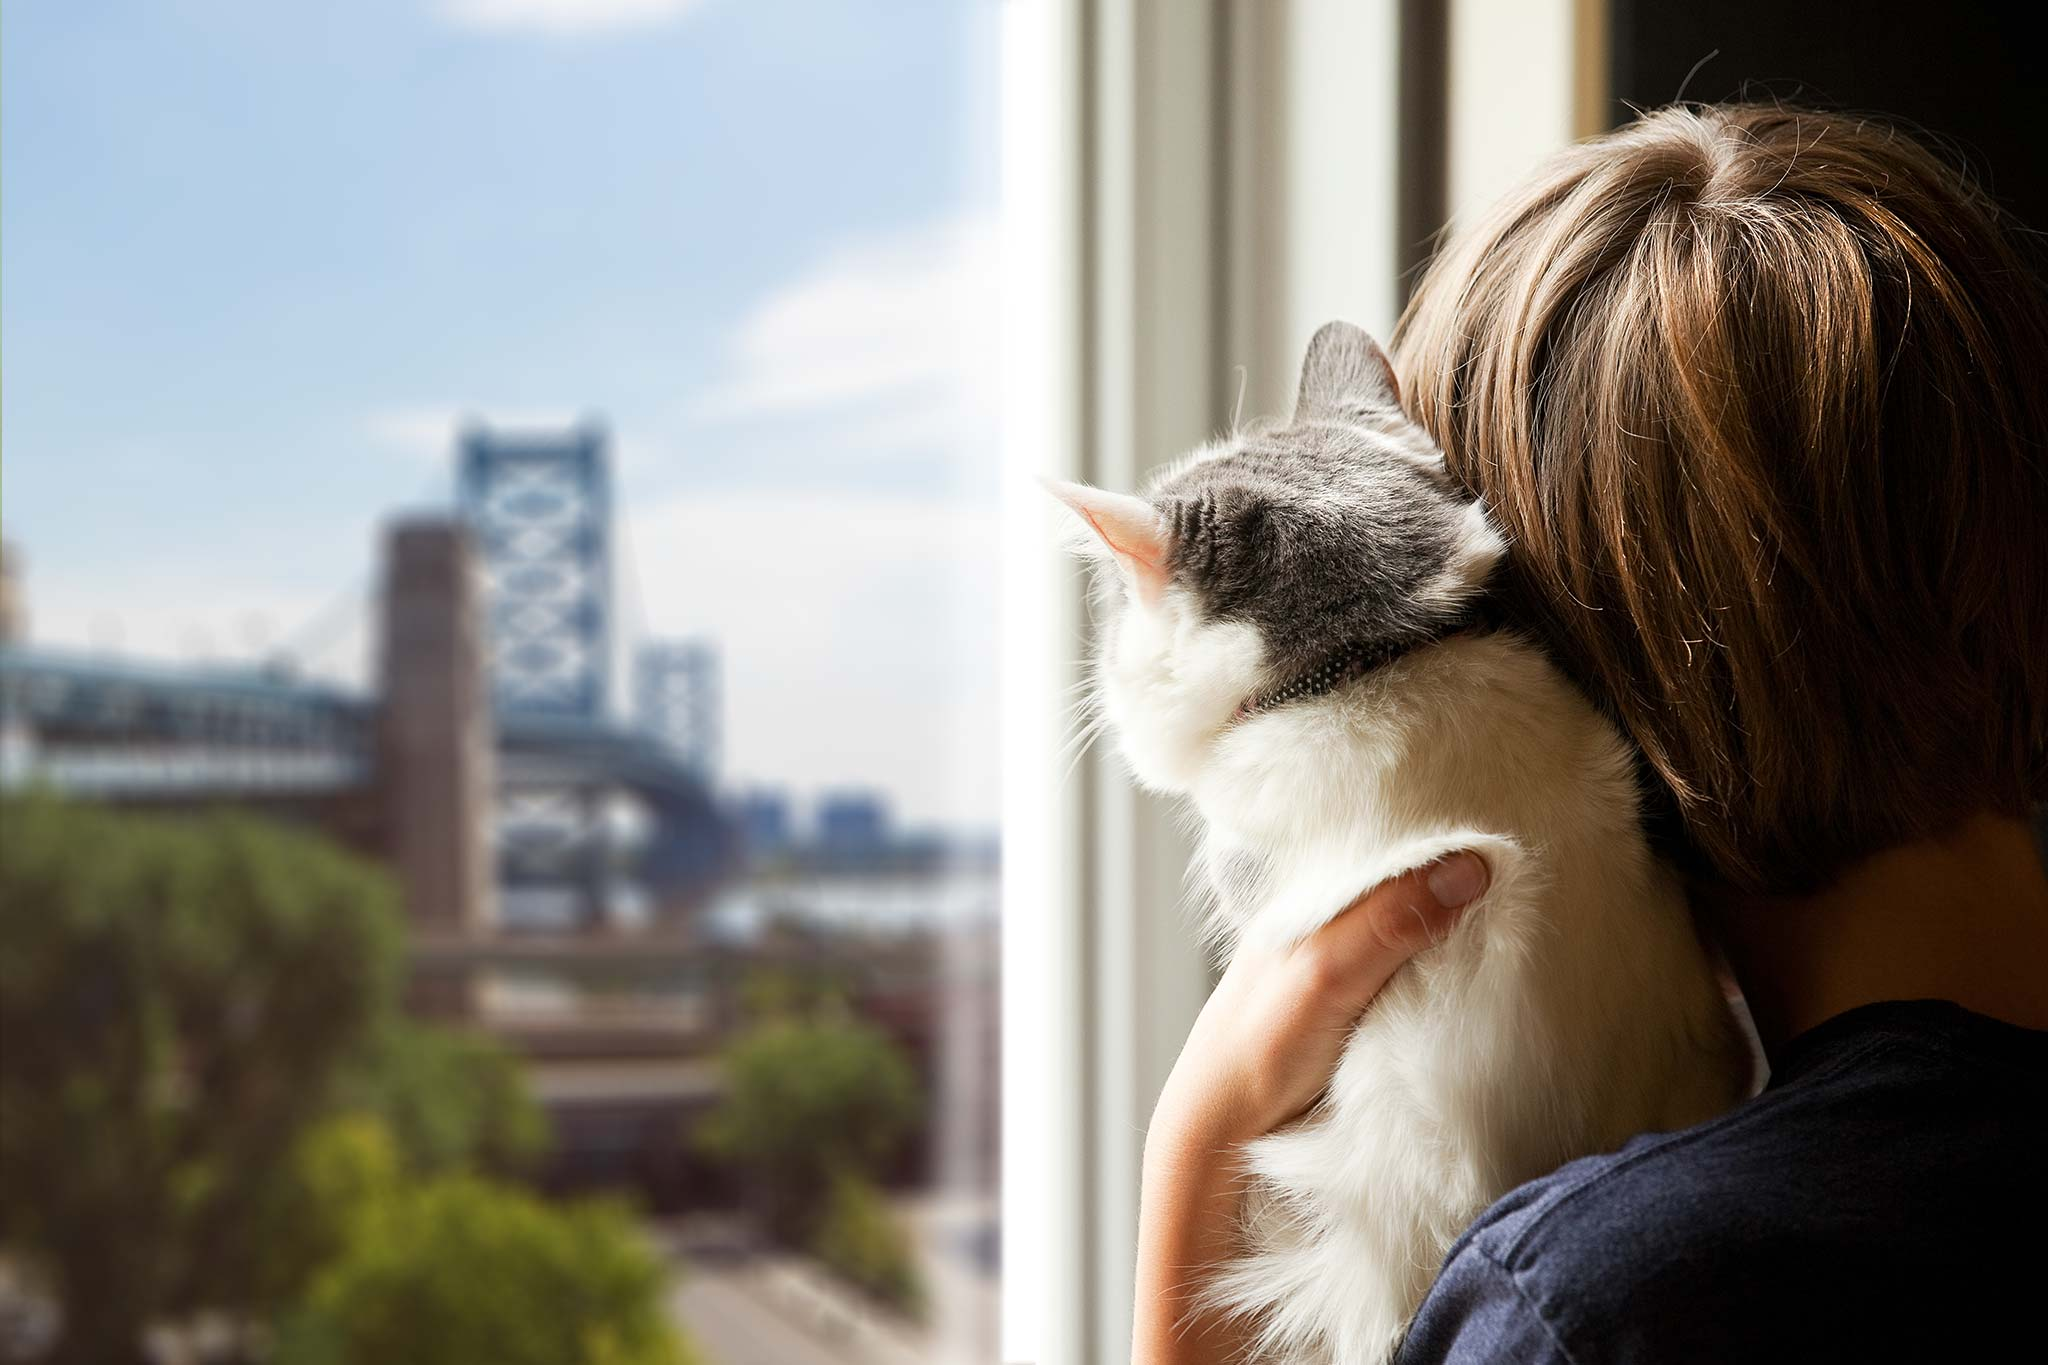 Woman With Cat Looking at Bridge